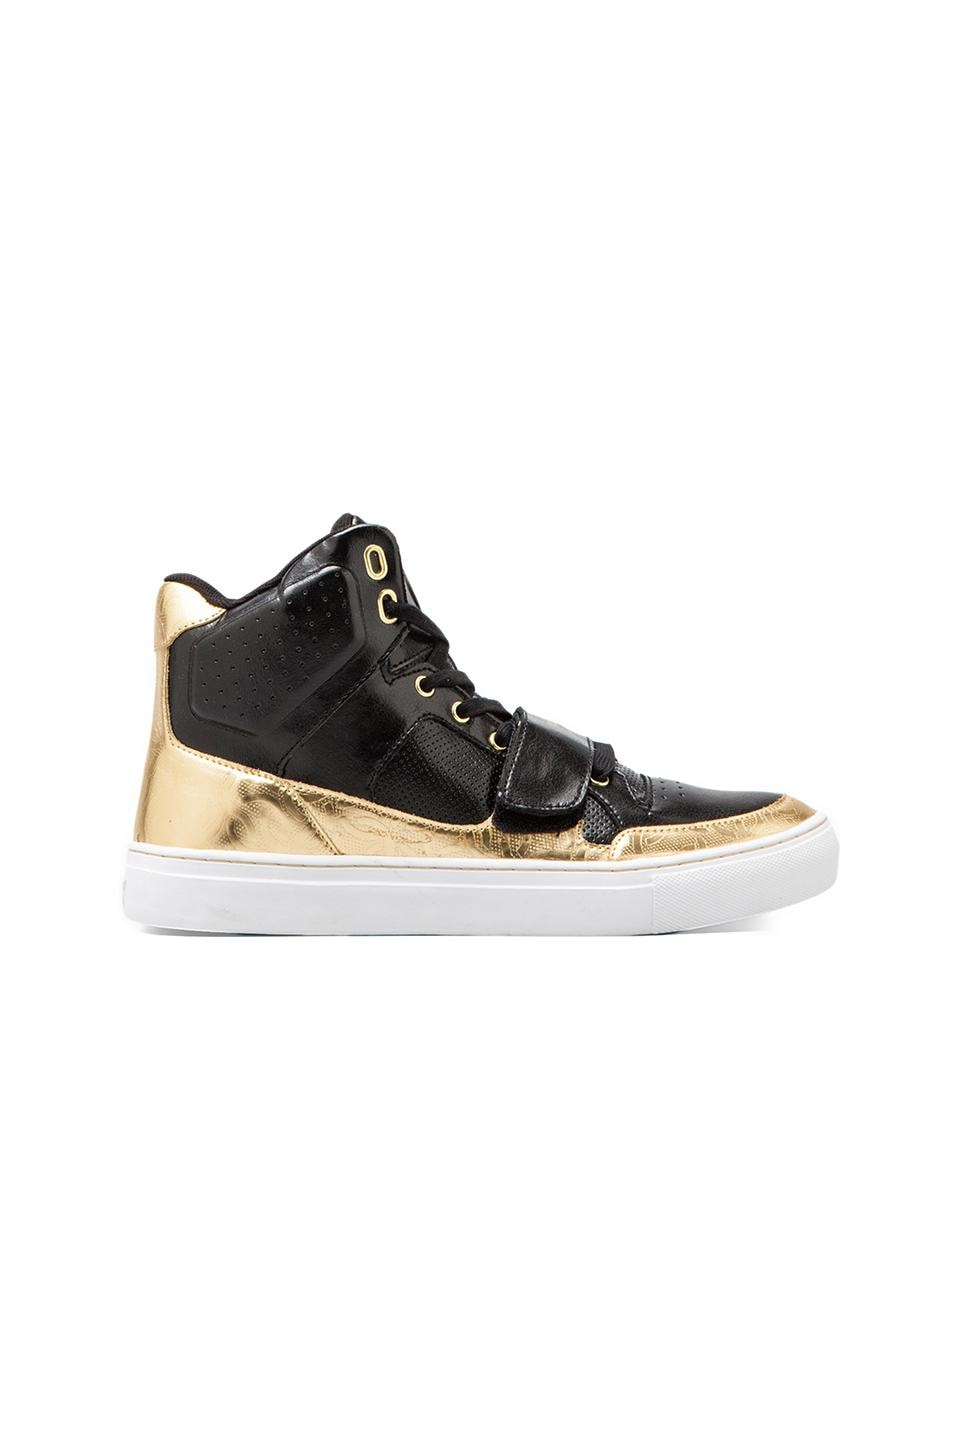 Creative Recreation Cota in Black/Gold